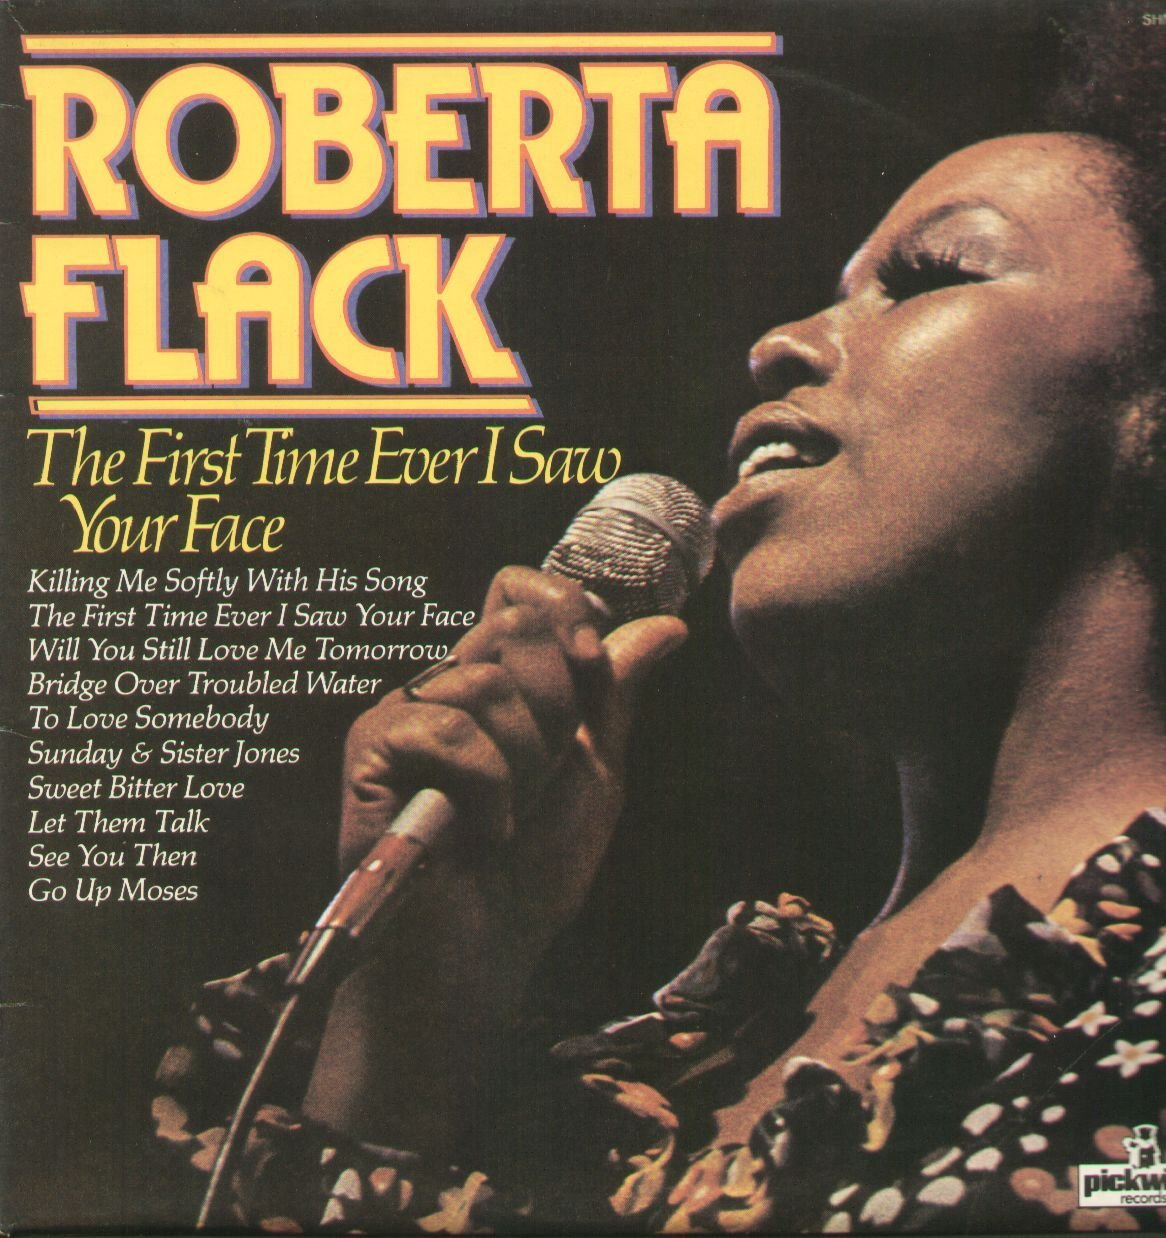 Roberta, Flack The First Time Ever I Saw Your Face